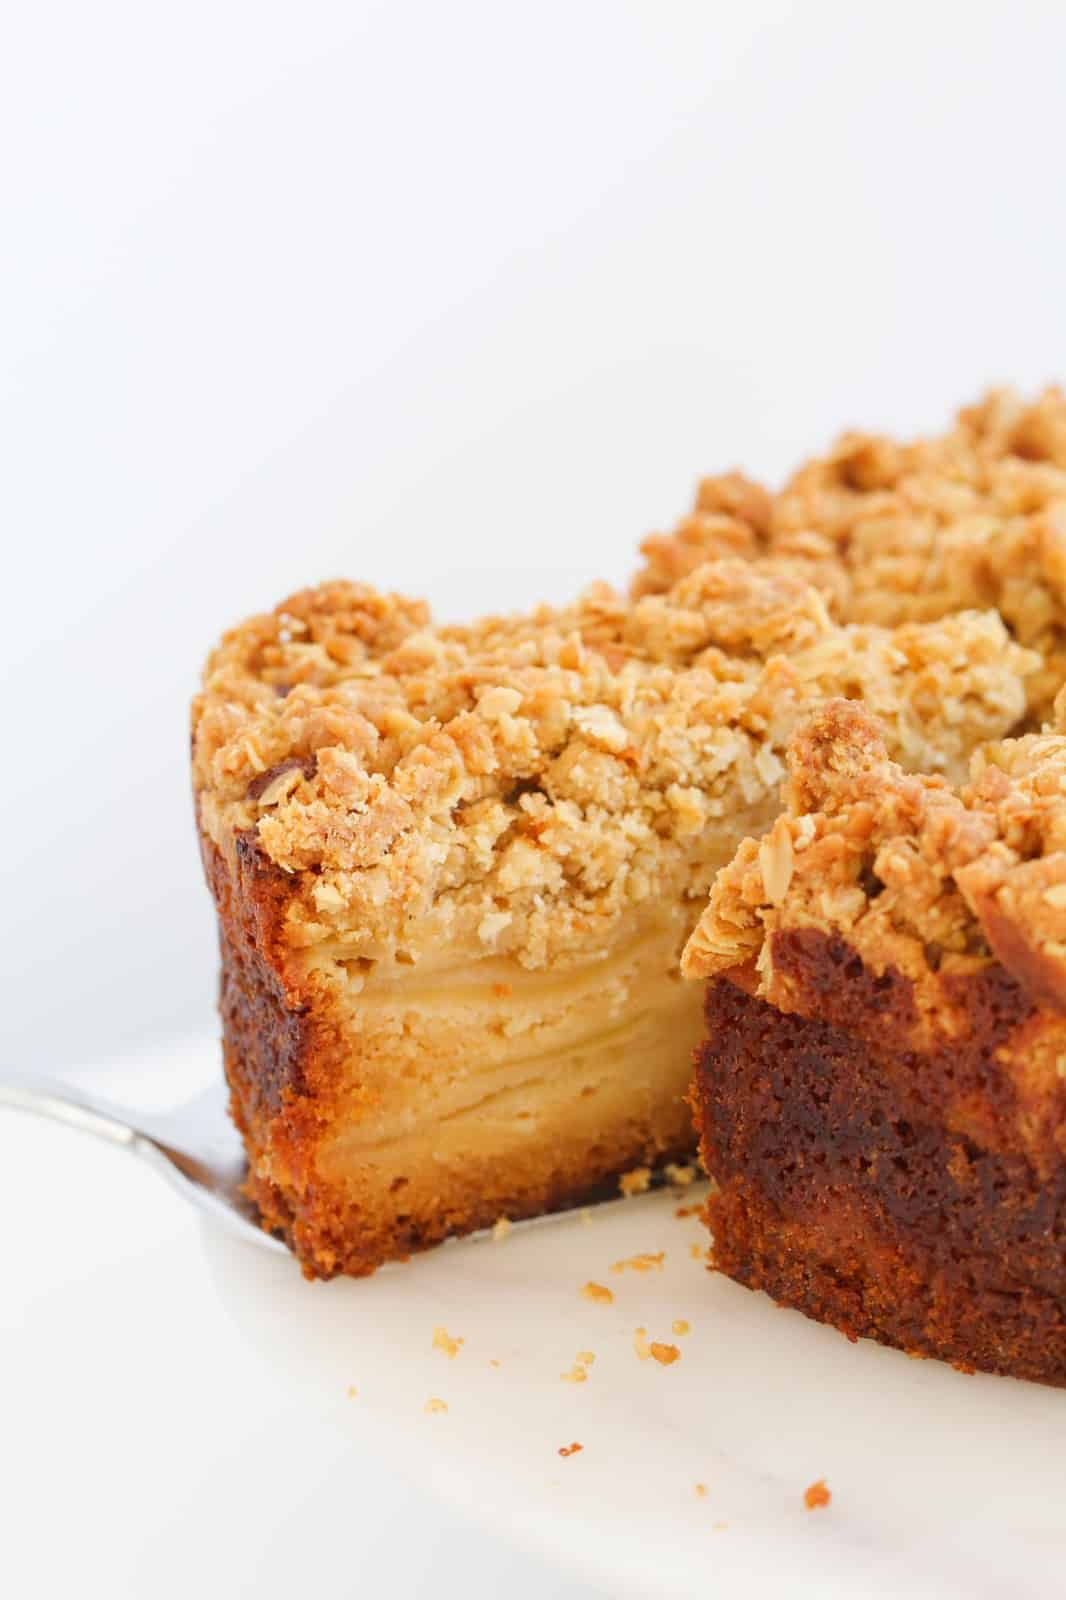 A serve of apple crumble cake being removed from the rest of the cake, showing layers of apple inside